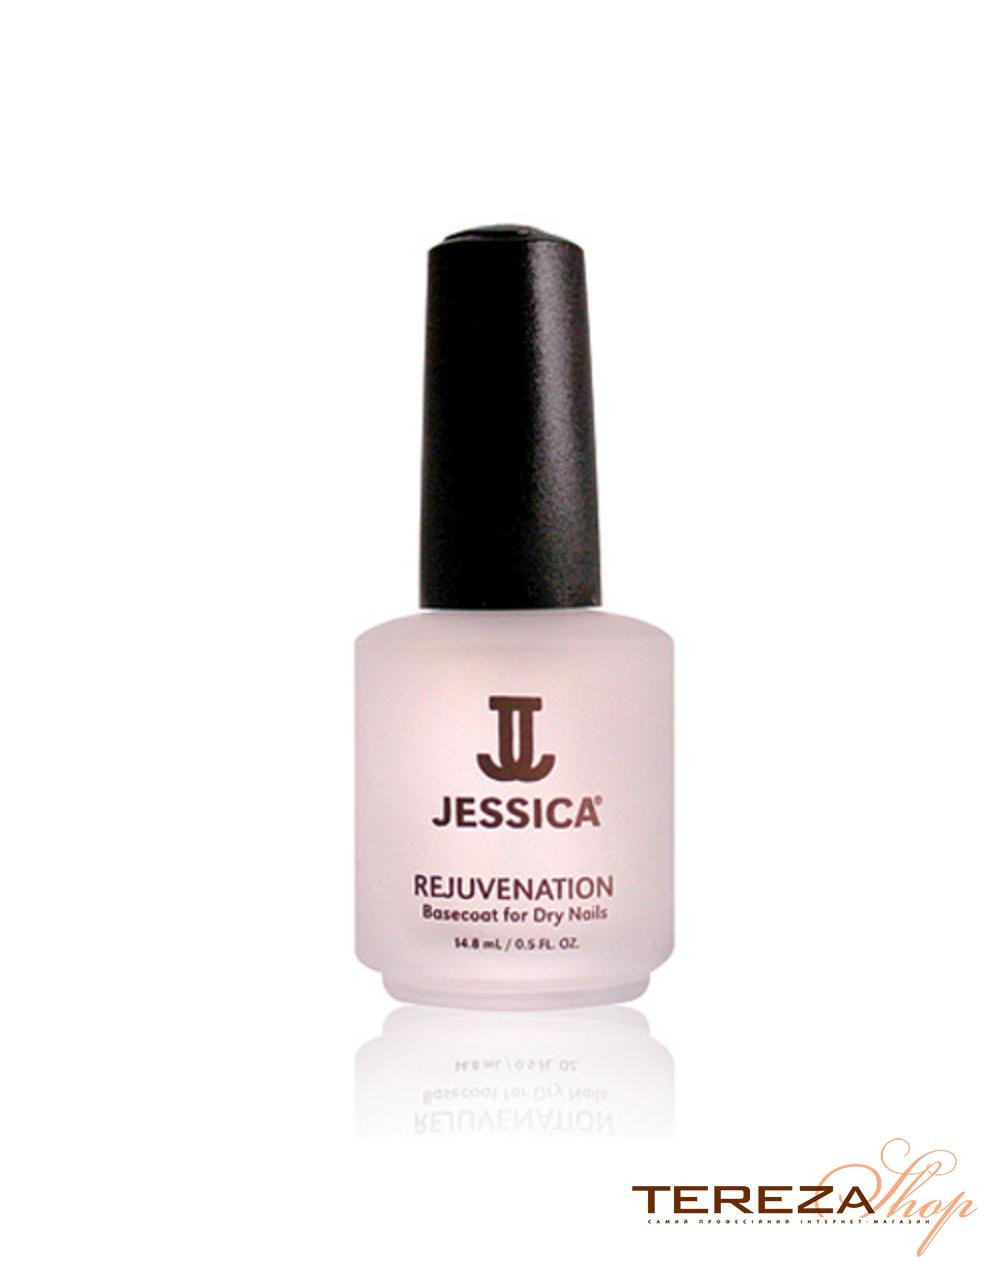 REJUVENATION JESSICA | Tereza Shop